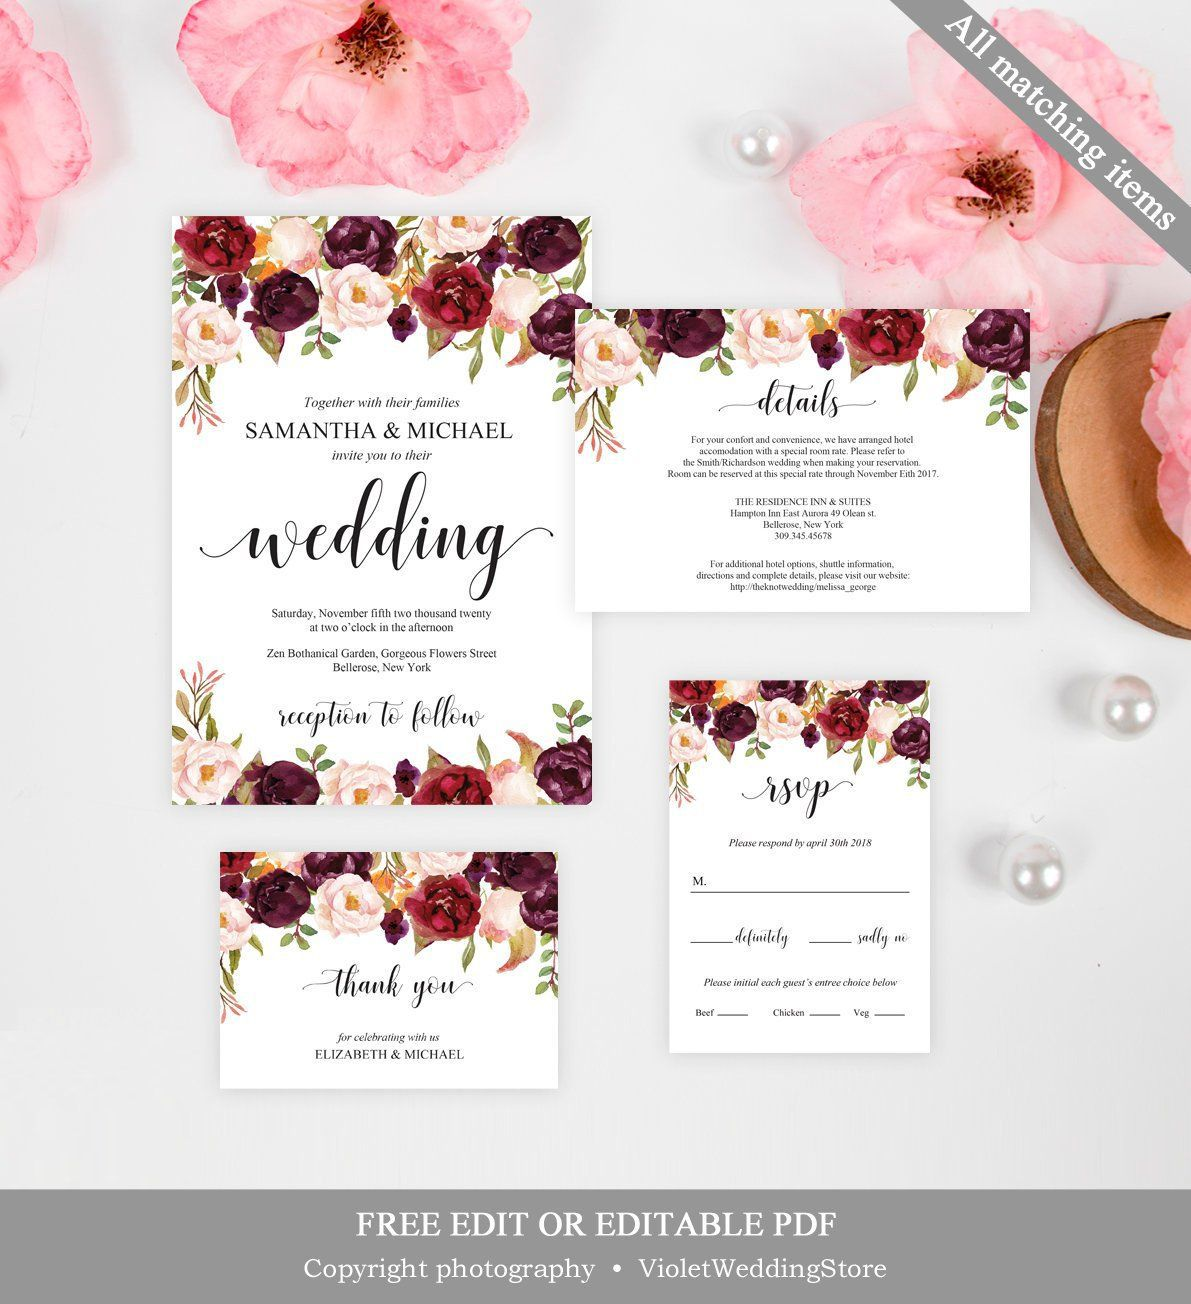 004 Magnificent Formal Wedding Invitation Template Free Inspiration Full